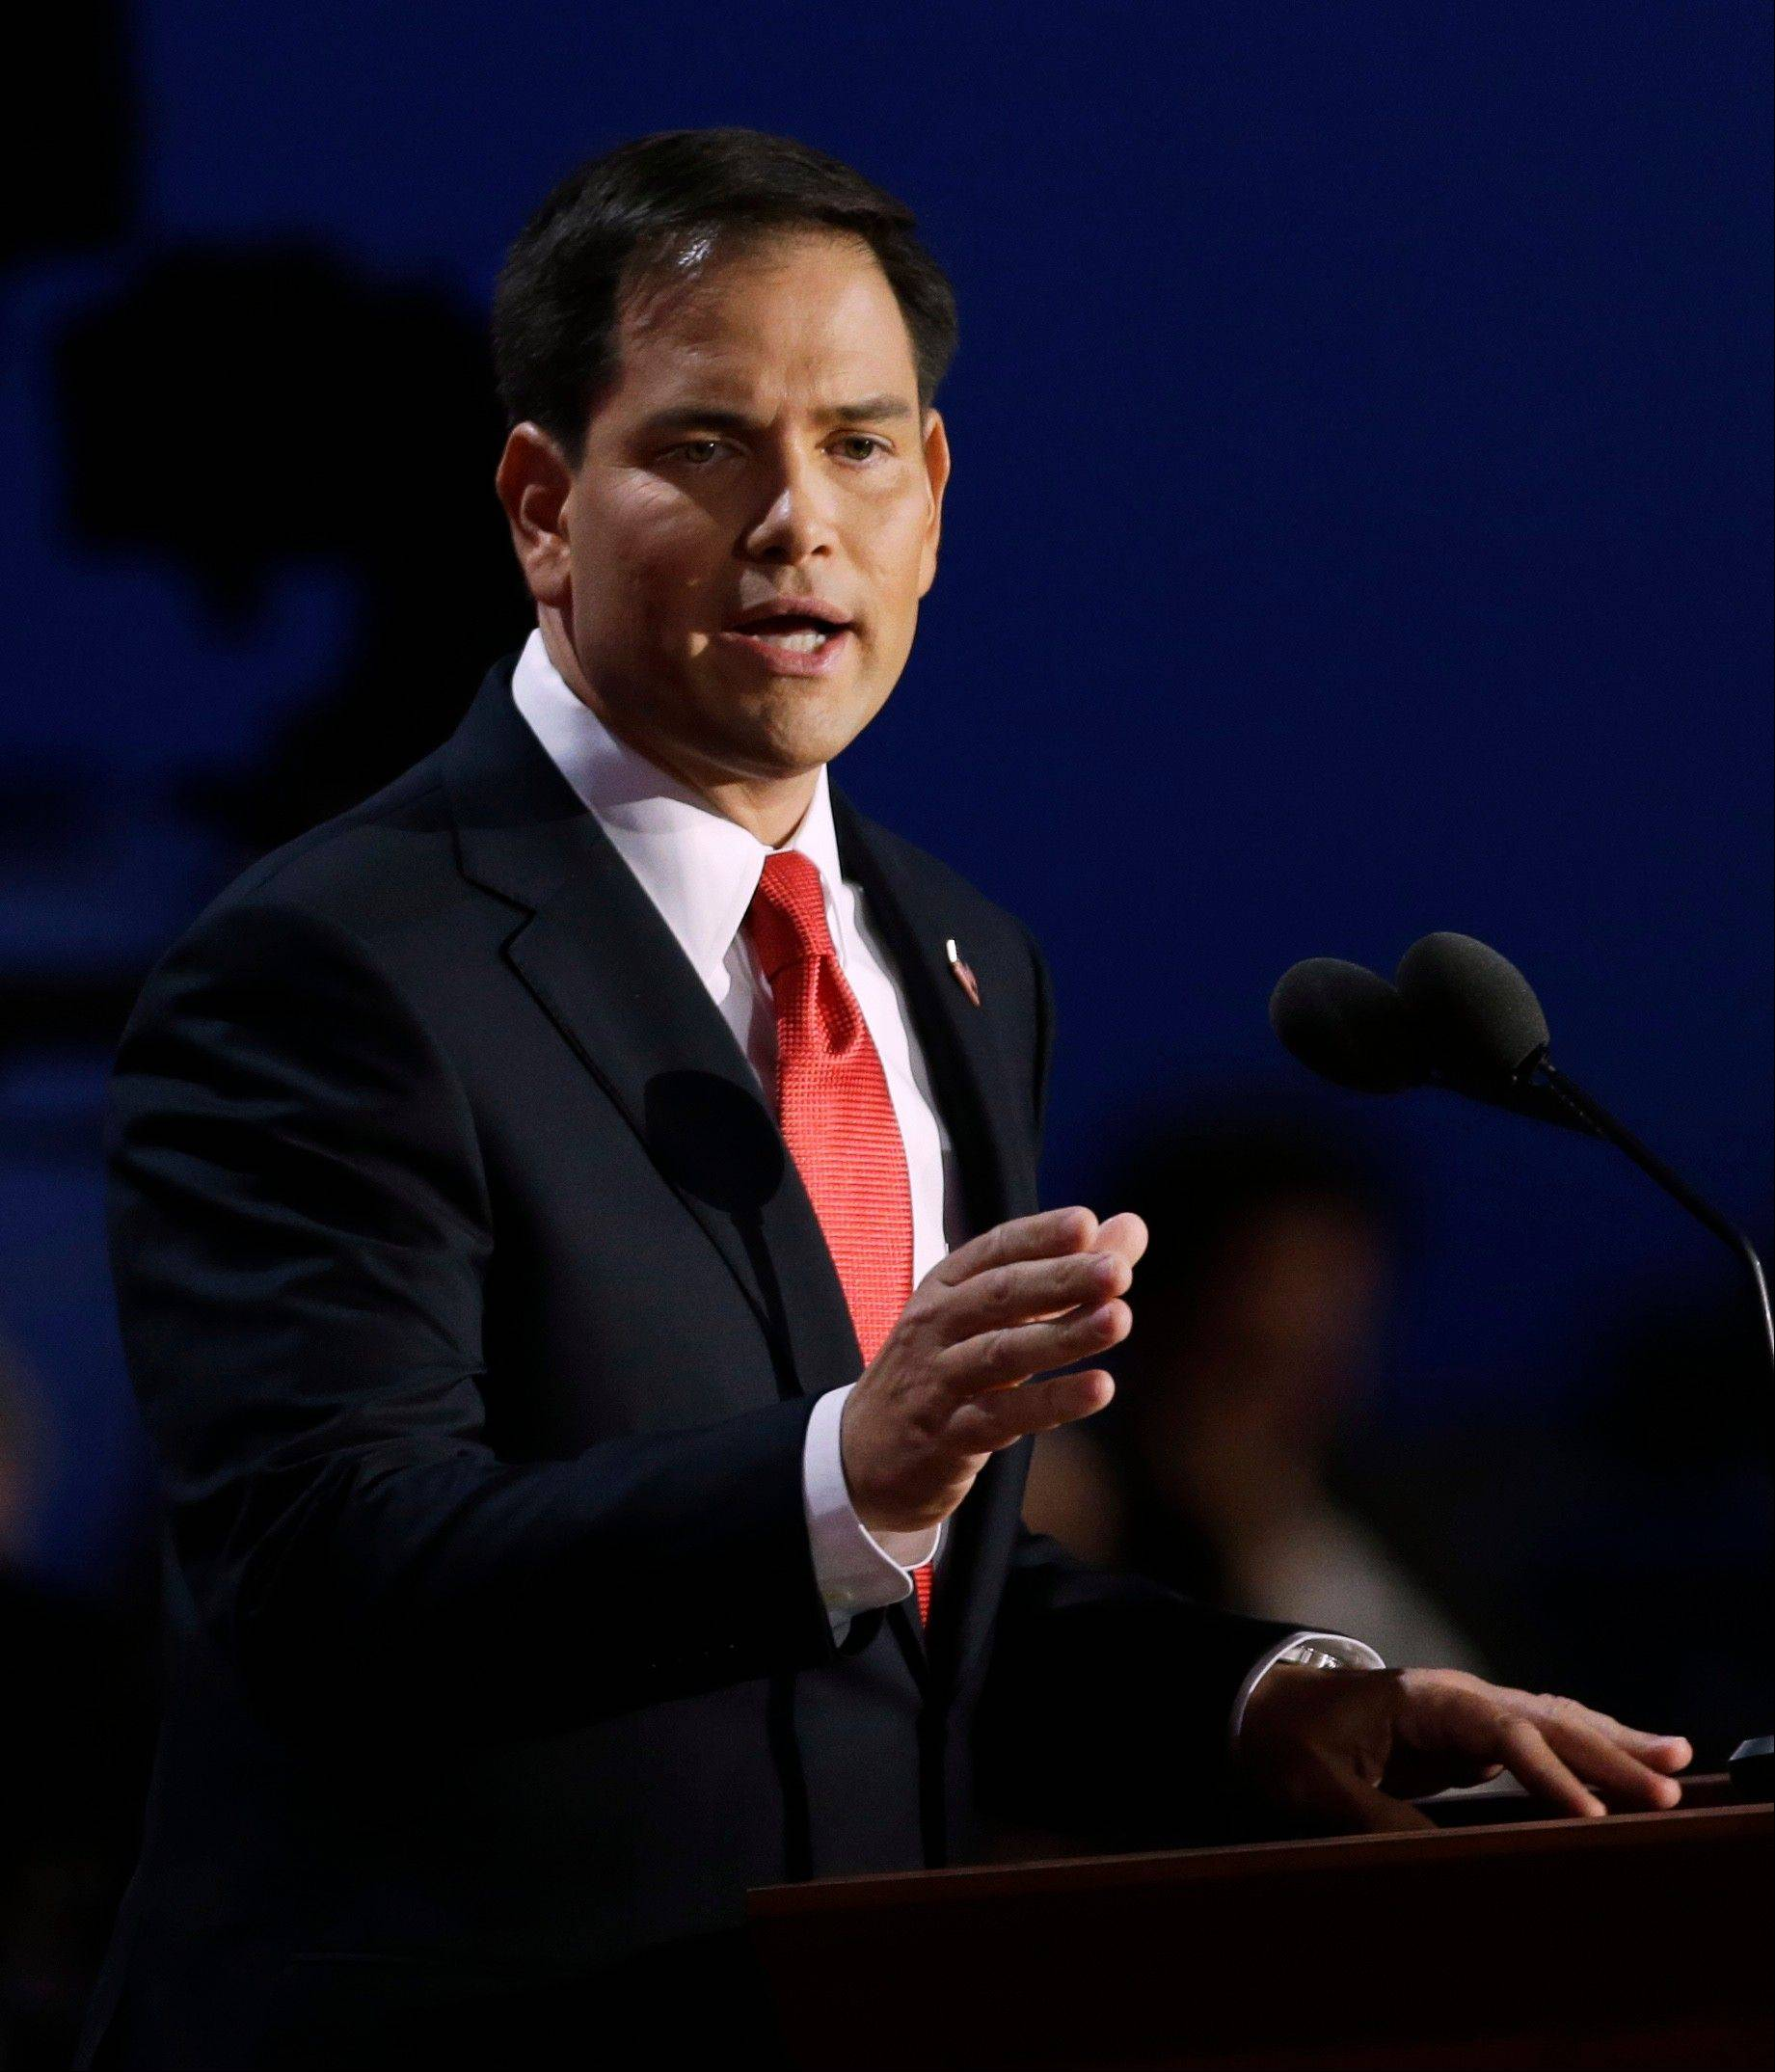 Florida Senator Marco Rubio addresses delegates Thursday during the Republican National Convention in Tampa, Fla.